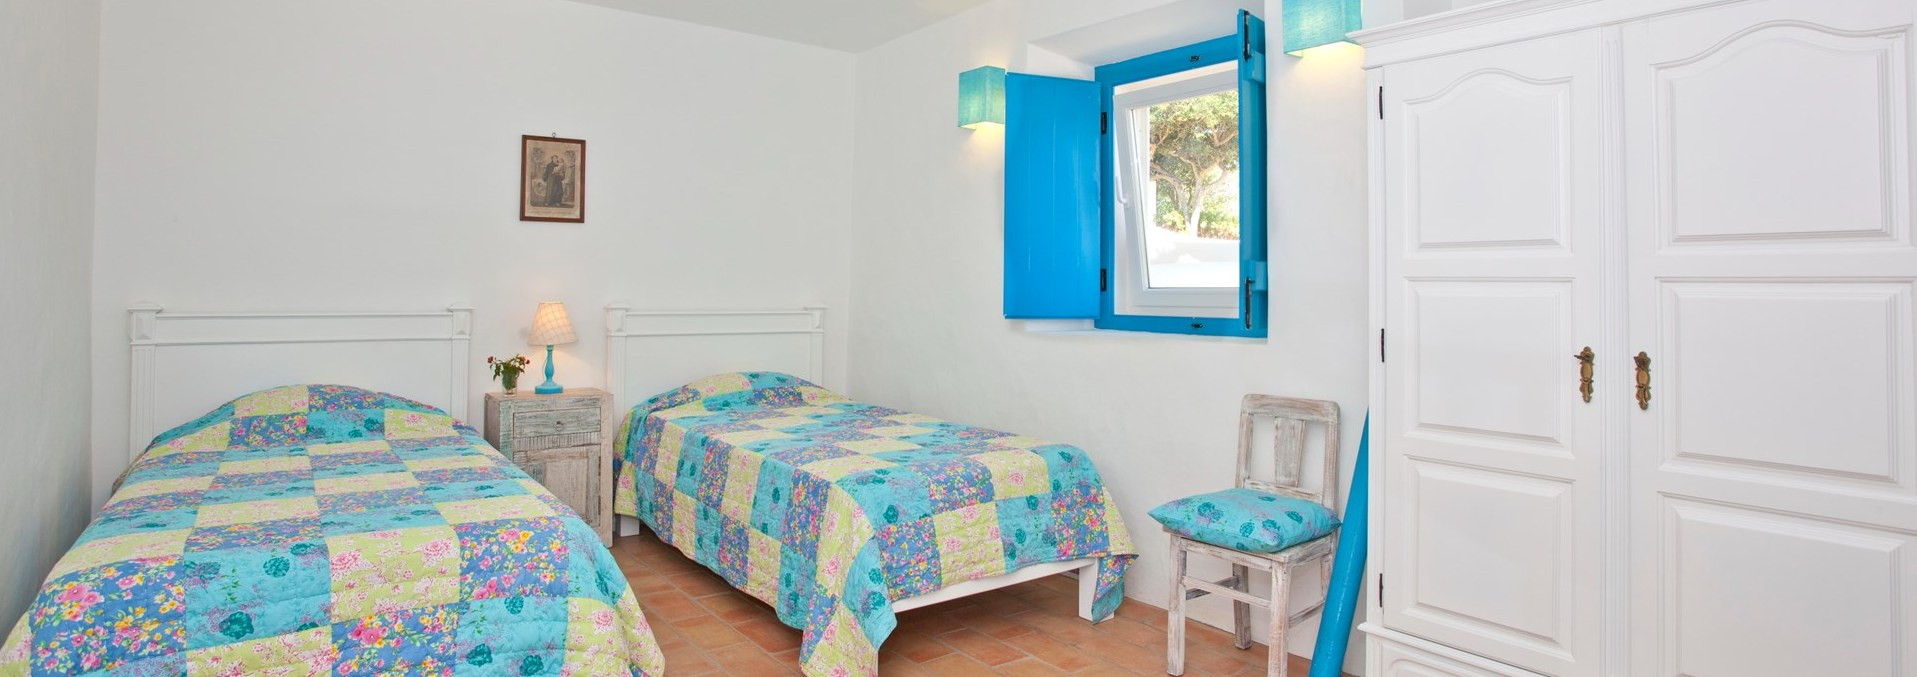 beach-cottage-twin-bedroom2